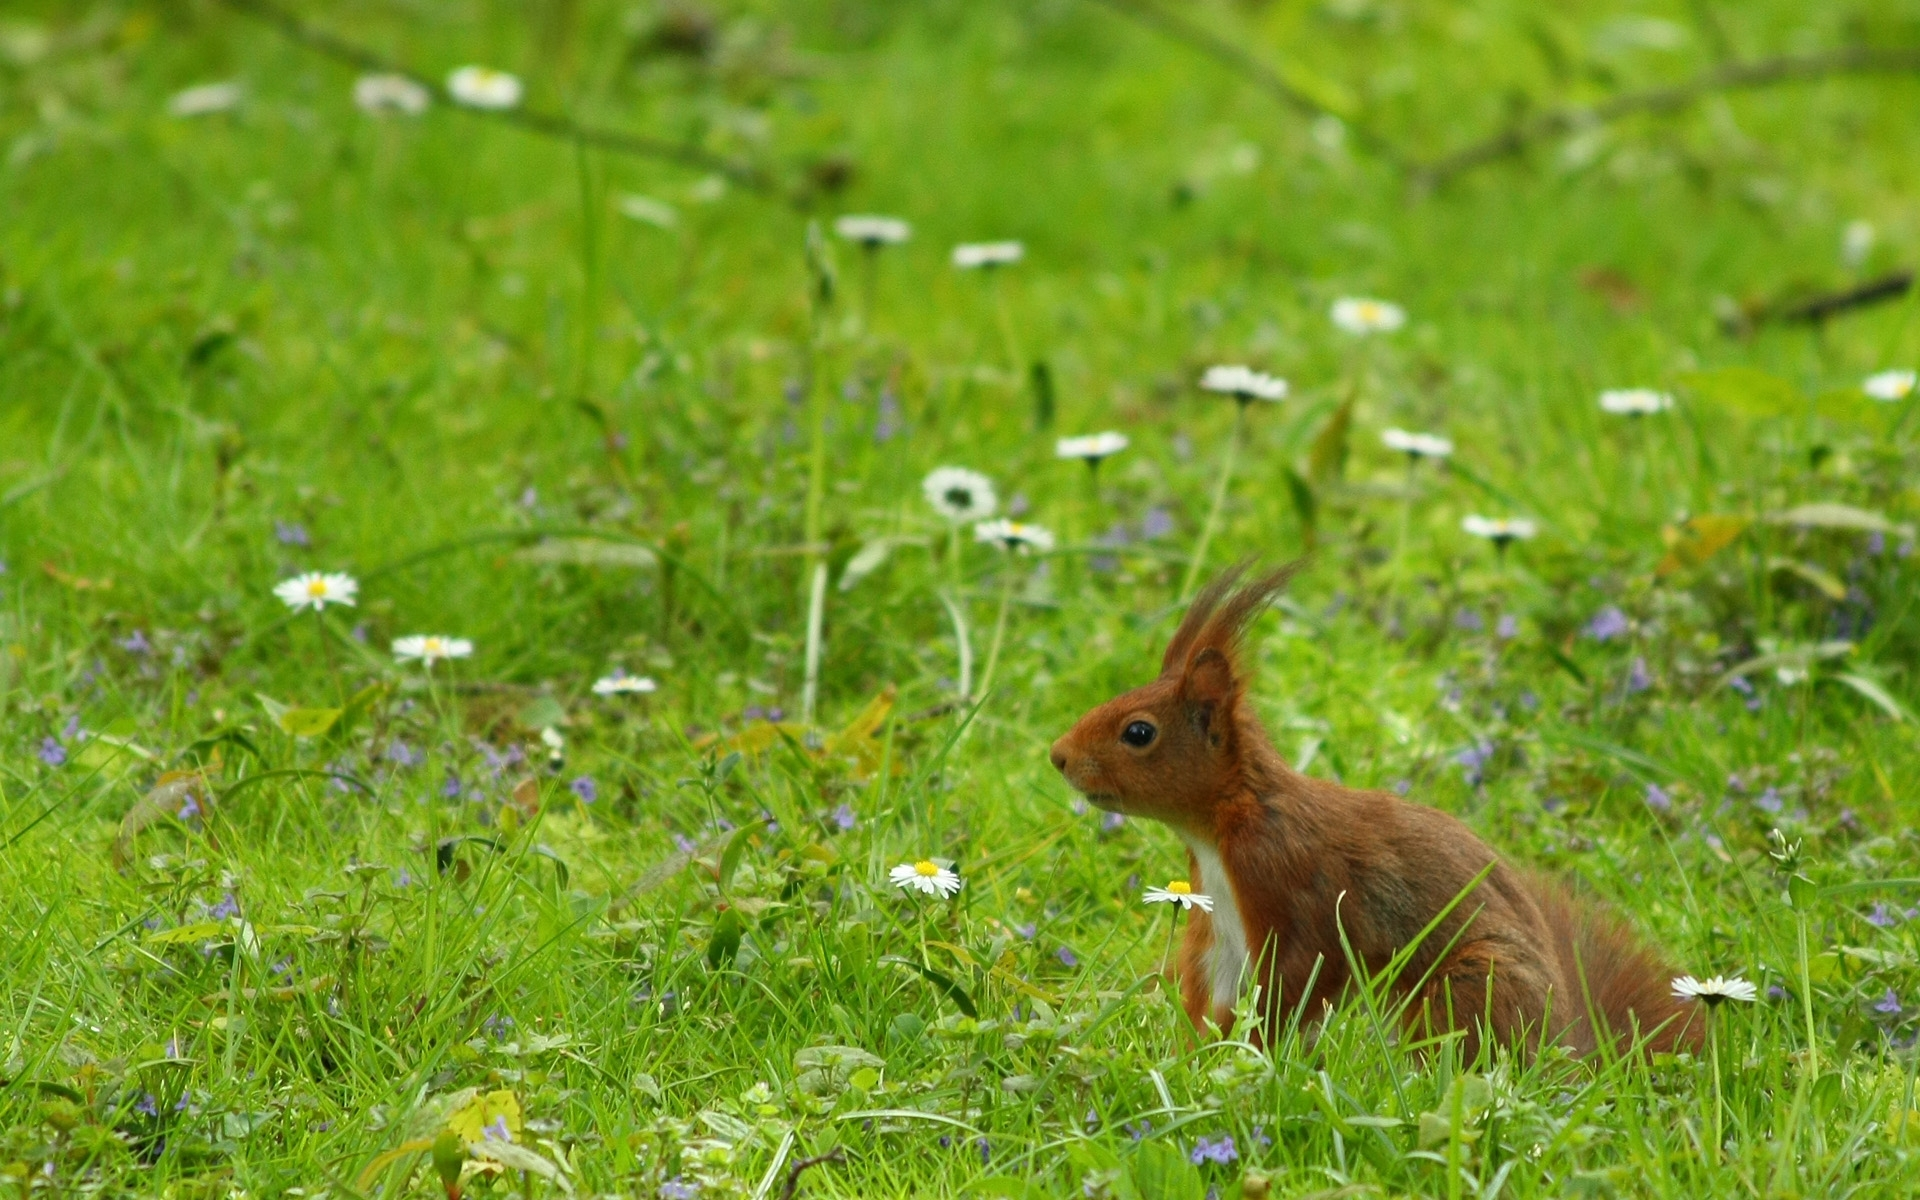 45865 download wallpaper Animals, Squirrel screensavers and pictures for free